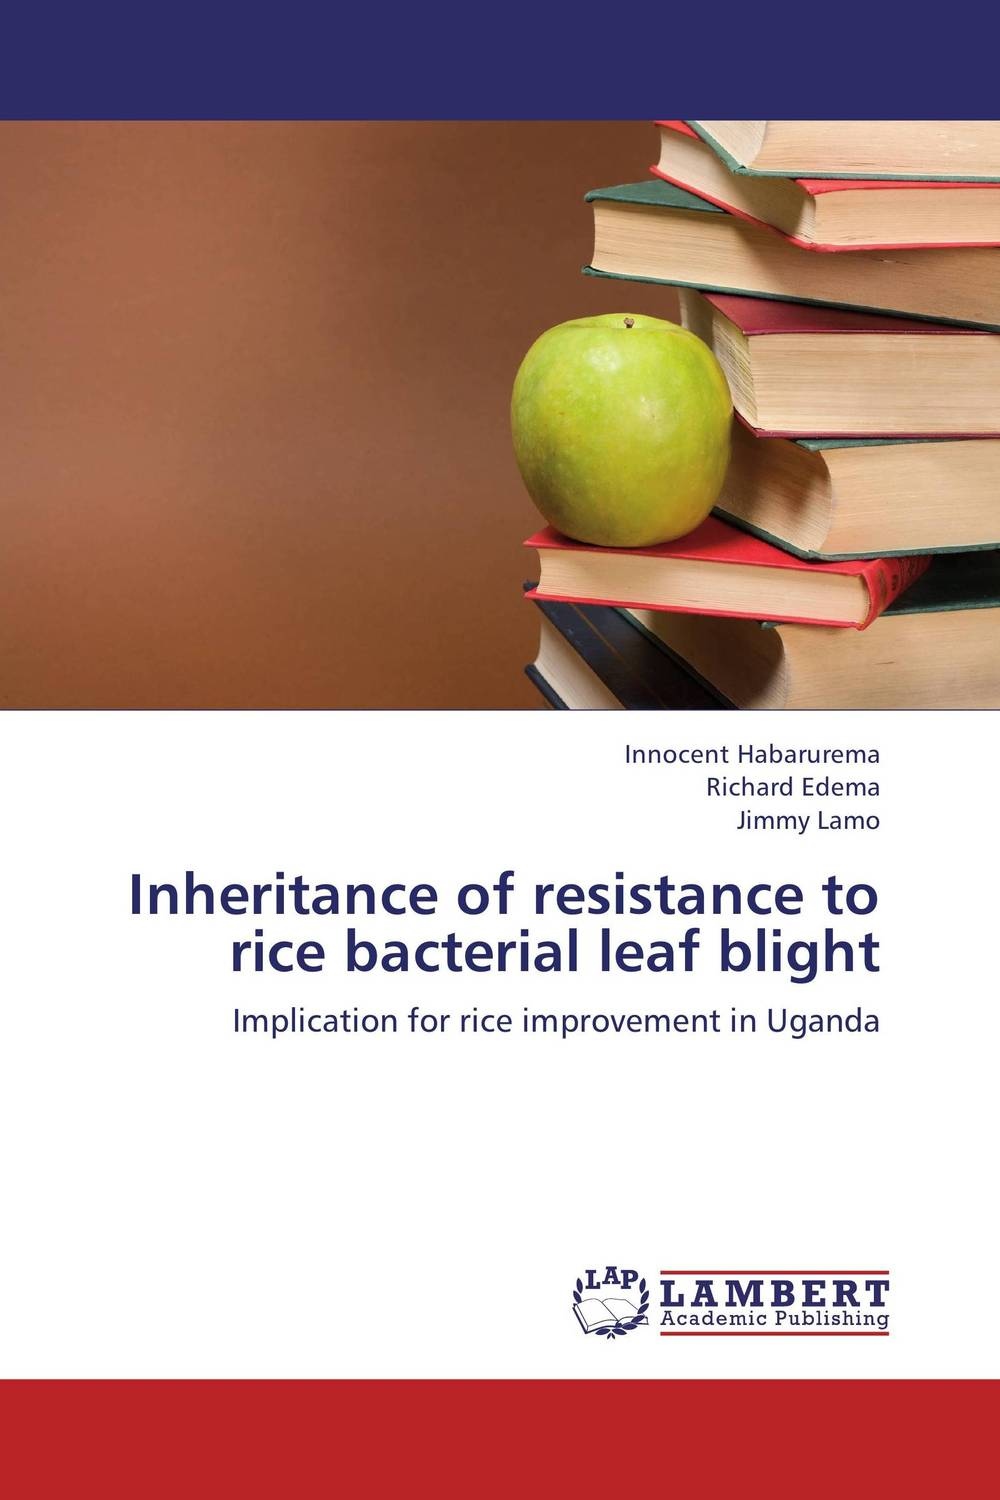 Inheritance of resistance to rice bacterial leaf blight bacterial resistance to antibiotics